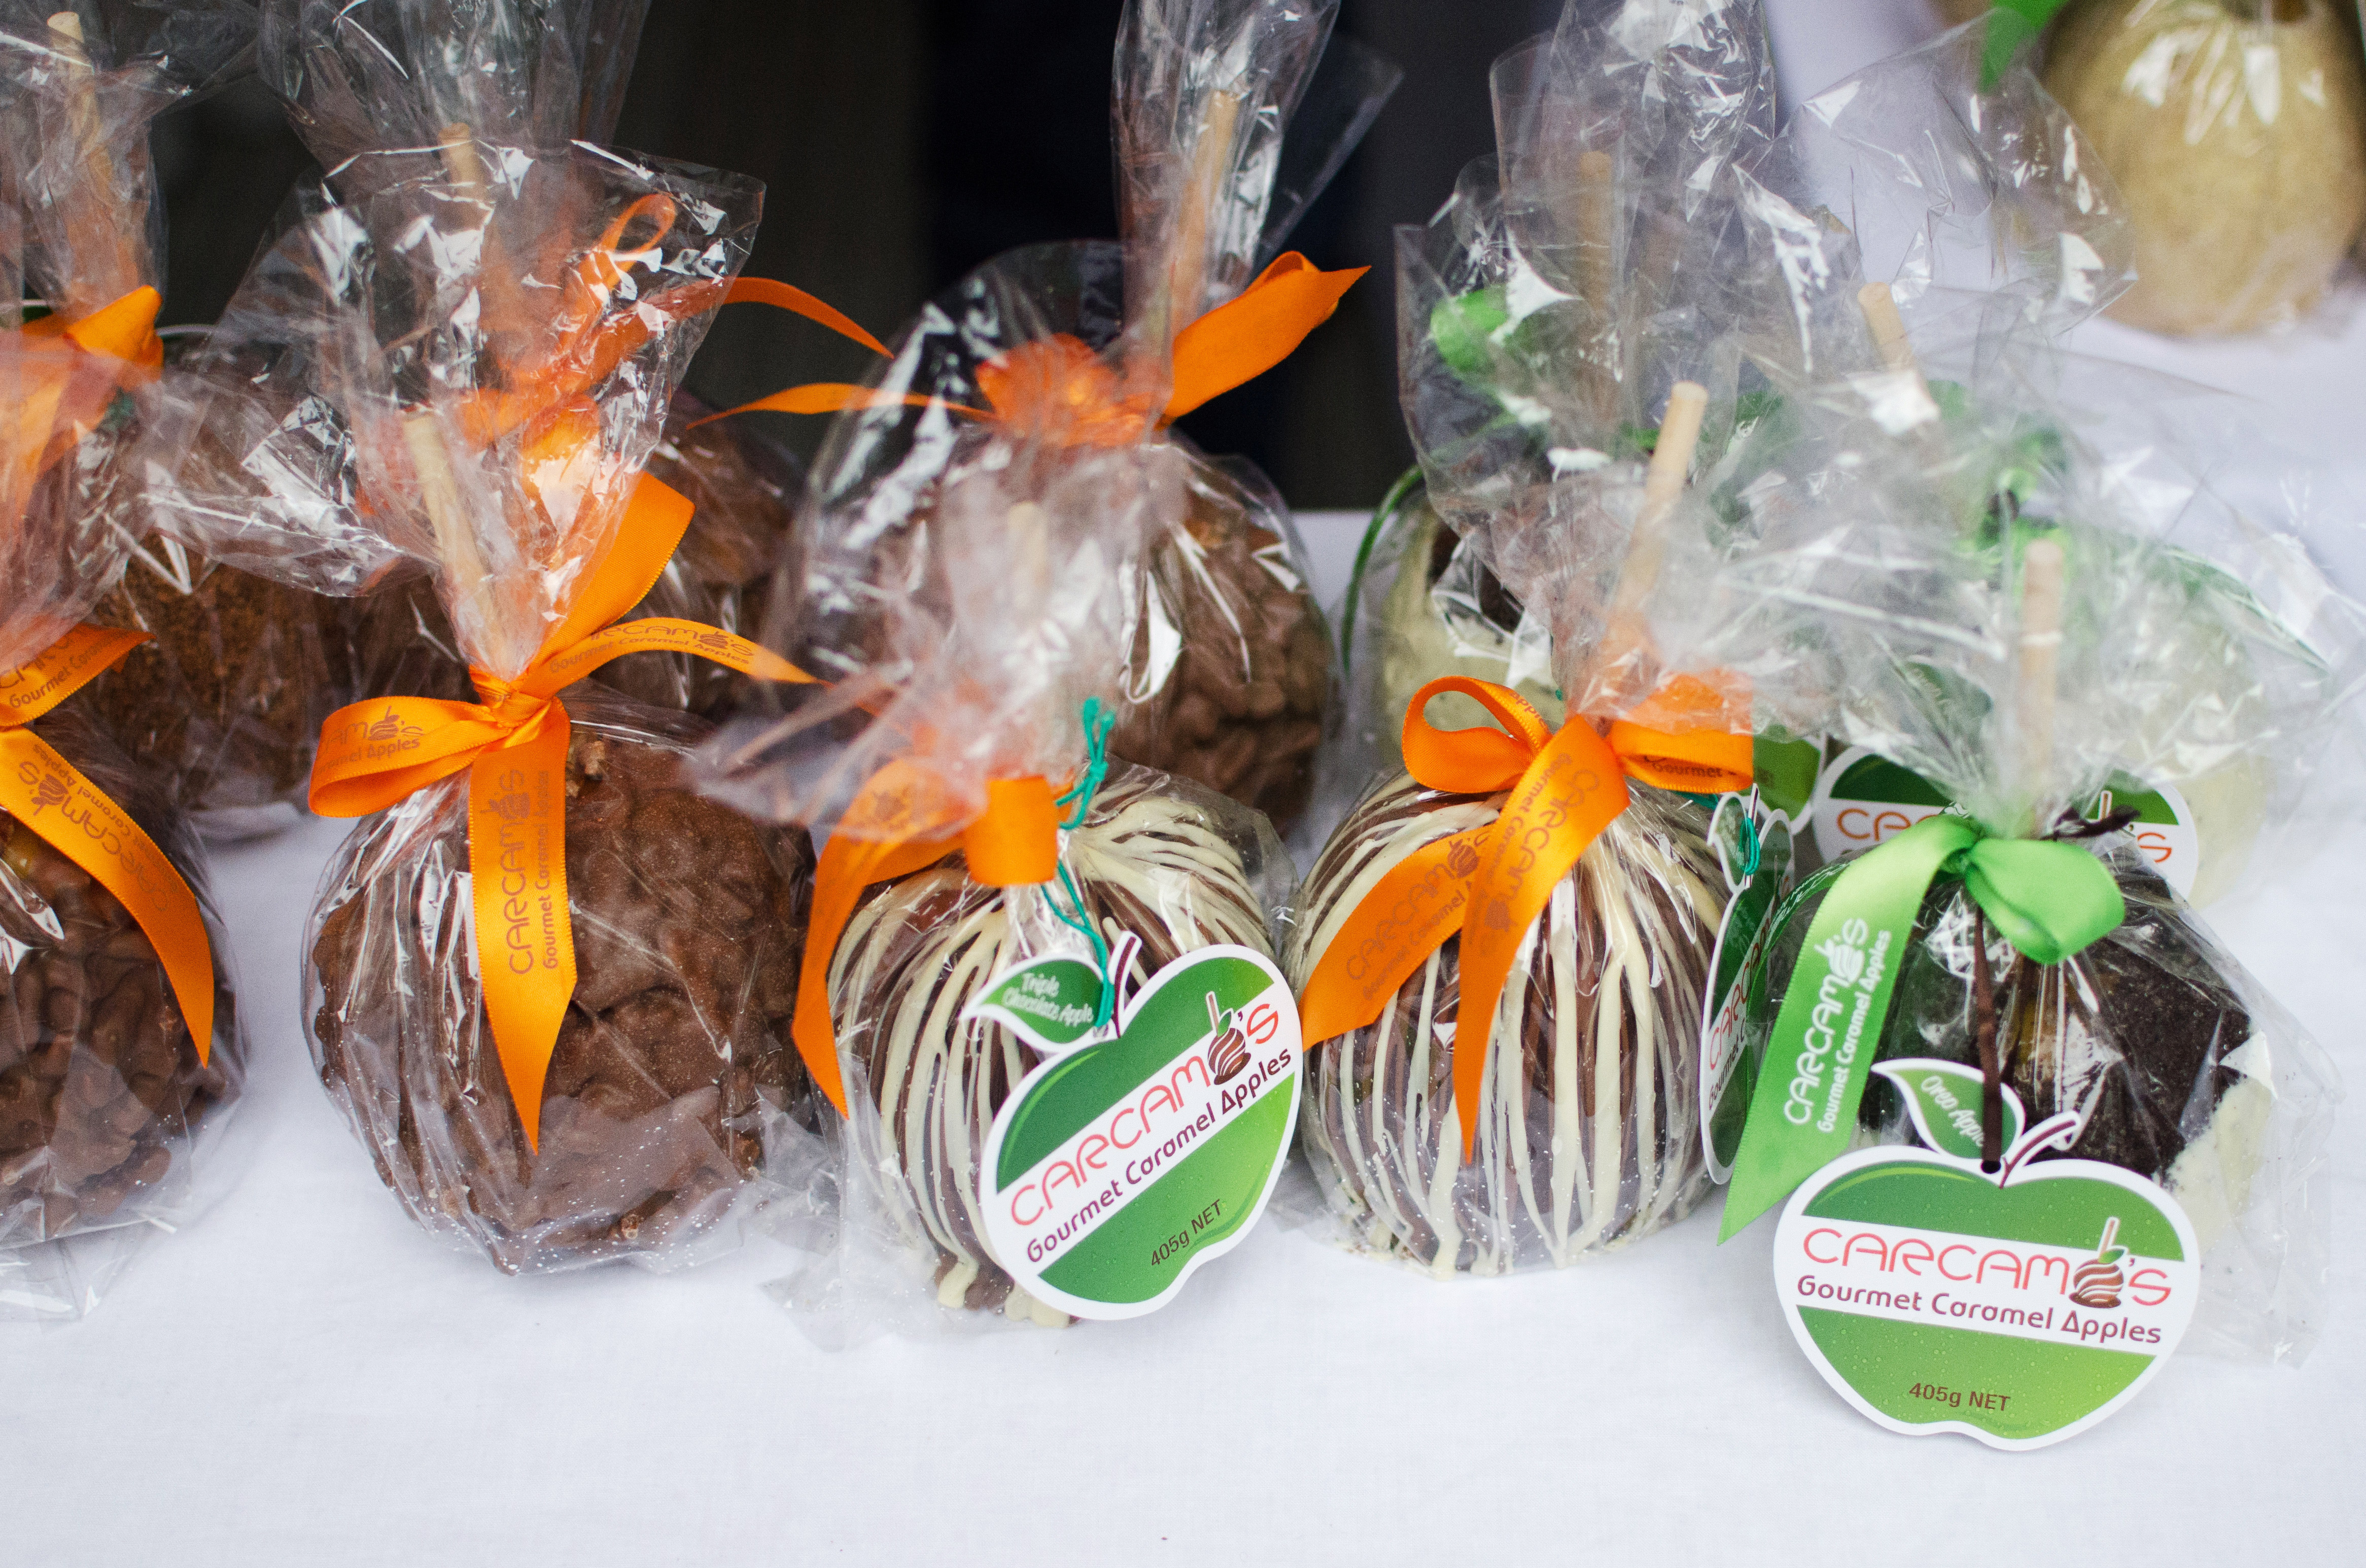 These caramel apples are like nothing you've ever tasted